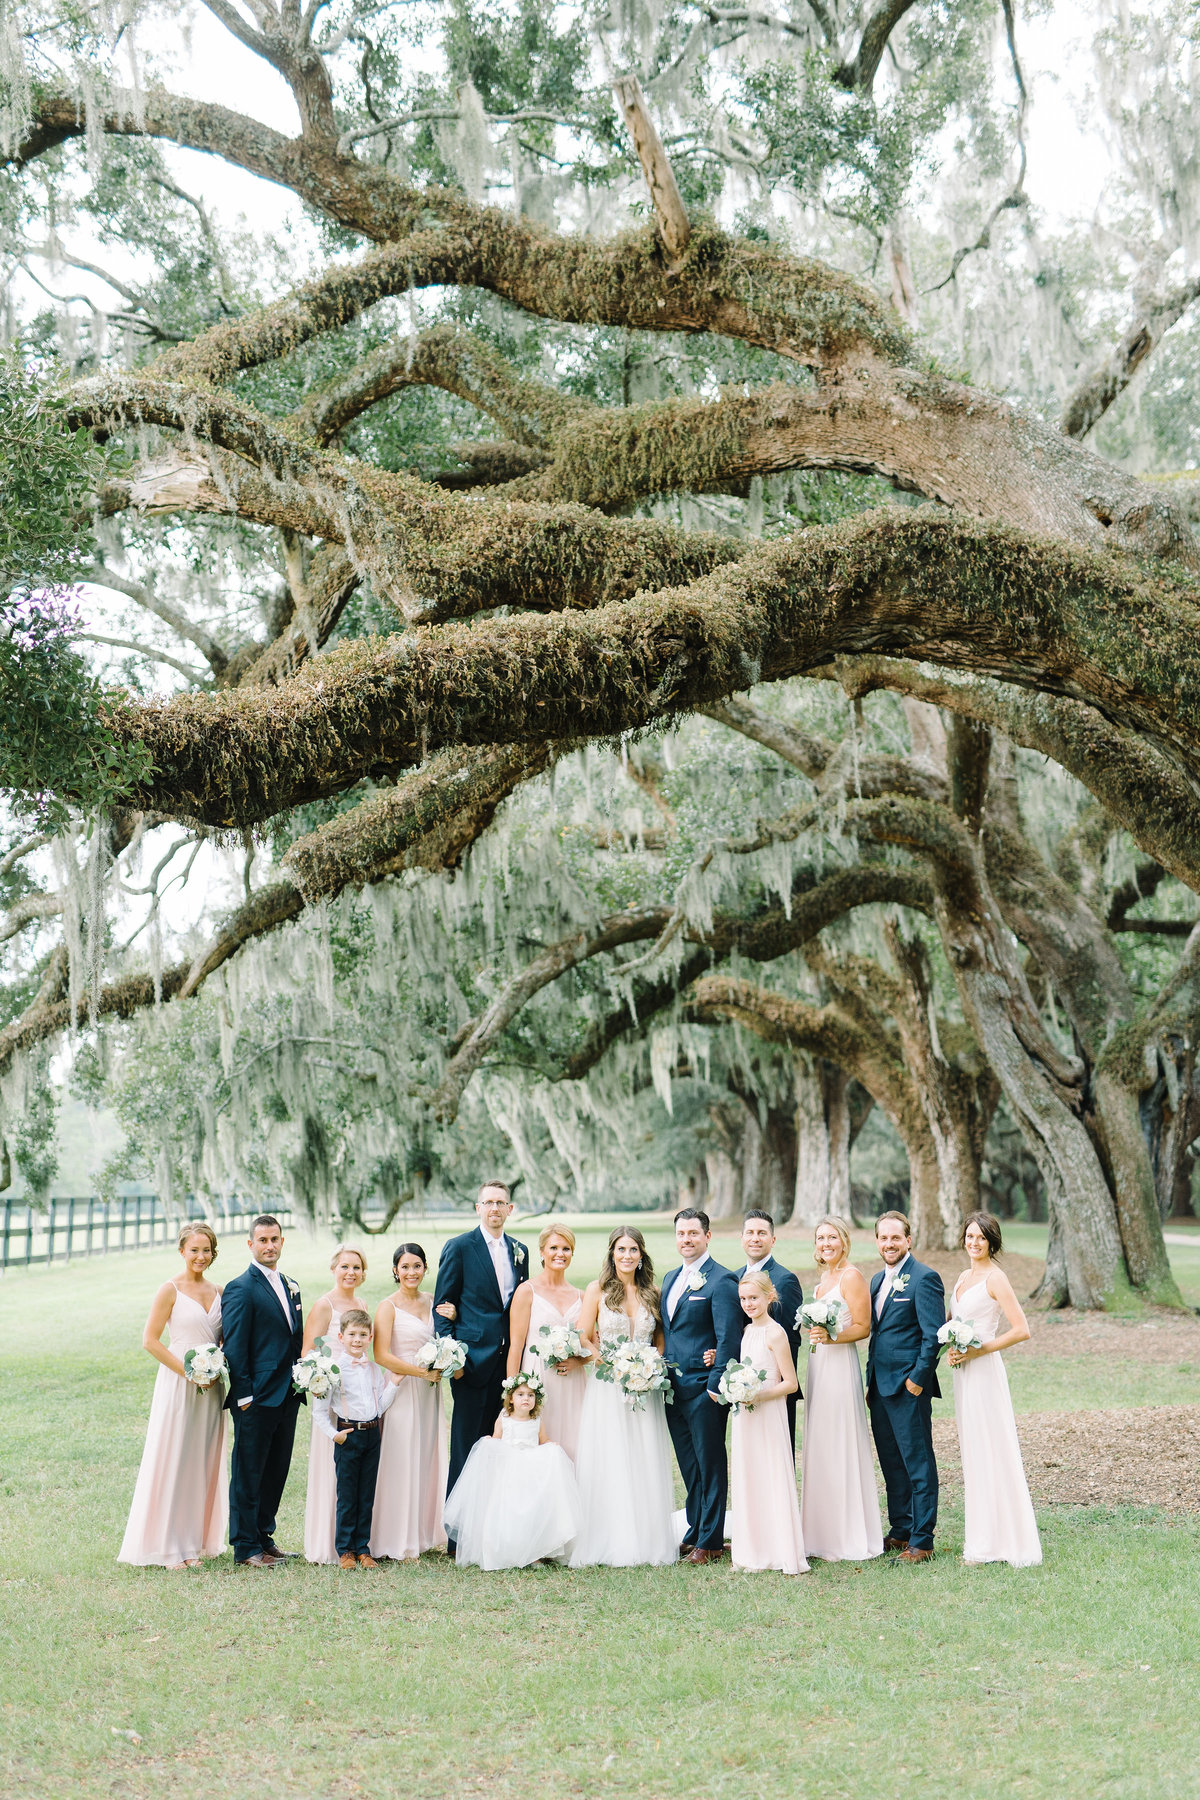 Wedding Party at Boone Hall Plantation Bridesmaids in Blush Pink Dresses and Groomsmen in Navy Blue Suits